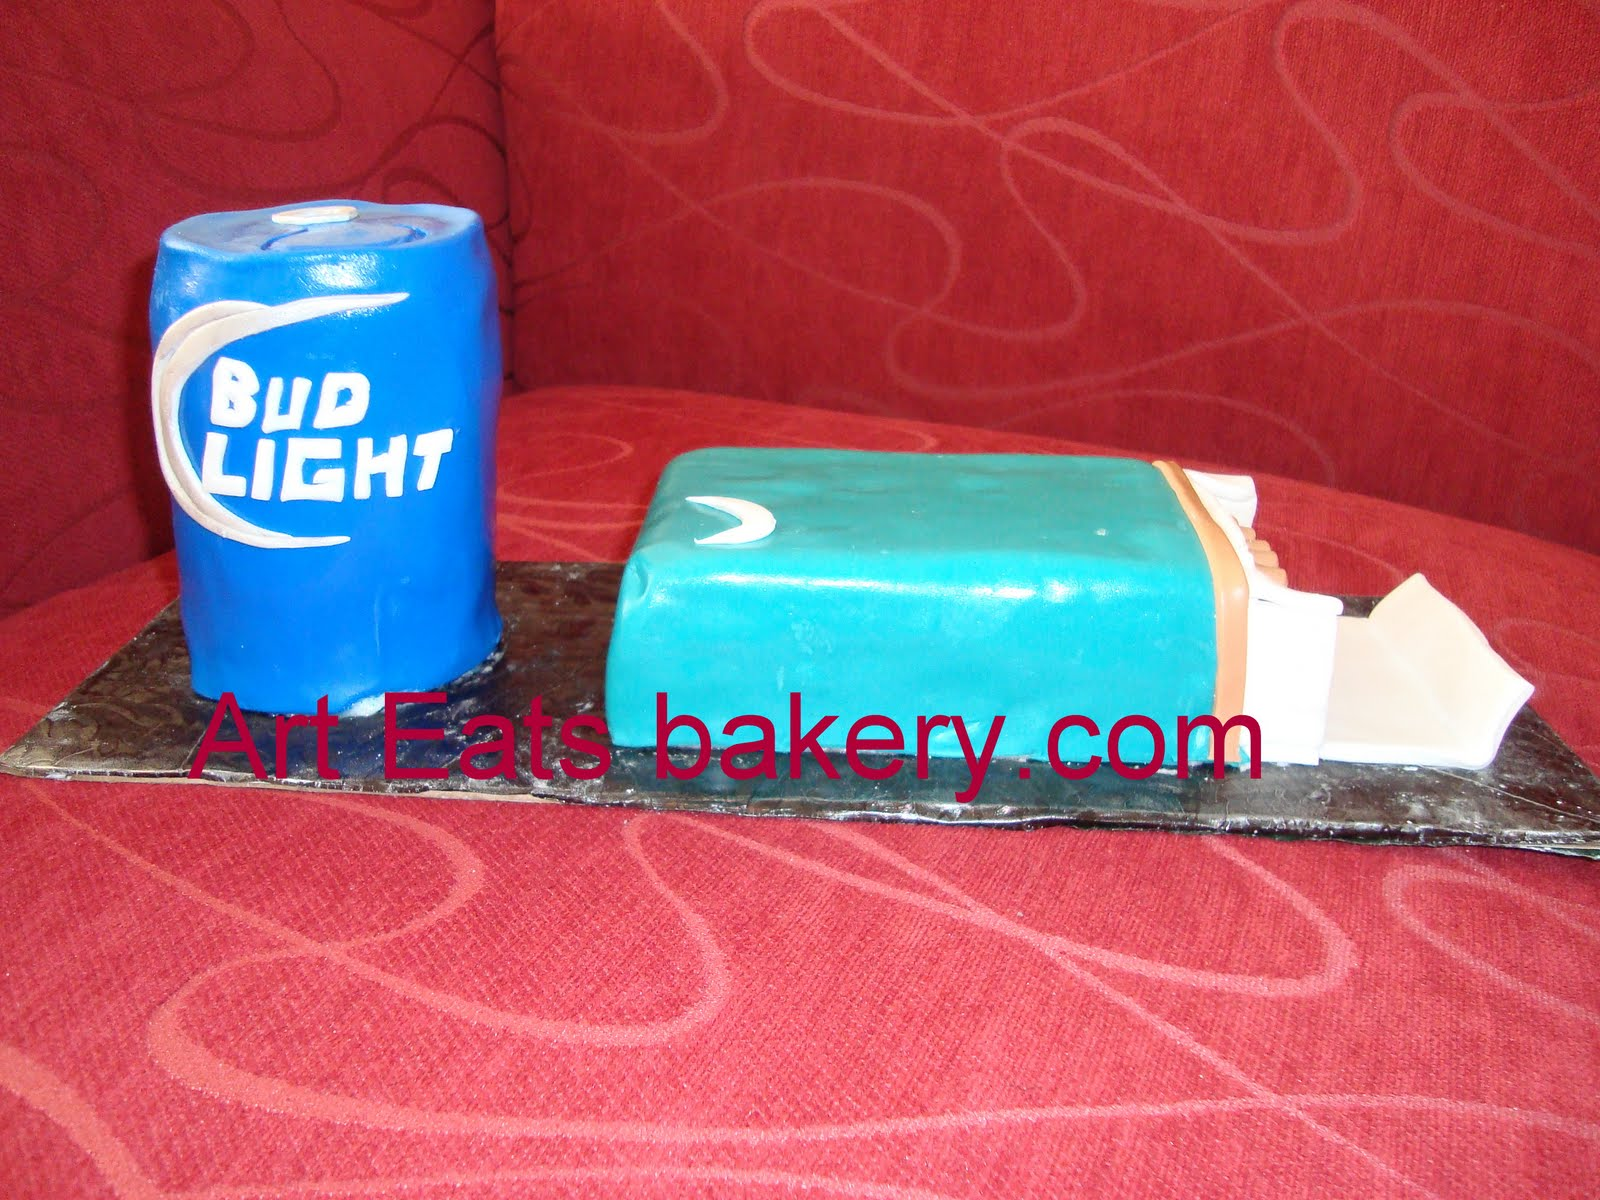 Enjoyable 3D Bud Light Beer Can And Newports Birthday Cake Arteatsbakery Personalised Birthday Cards Cominlily Jamesorg